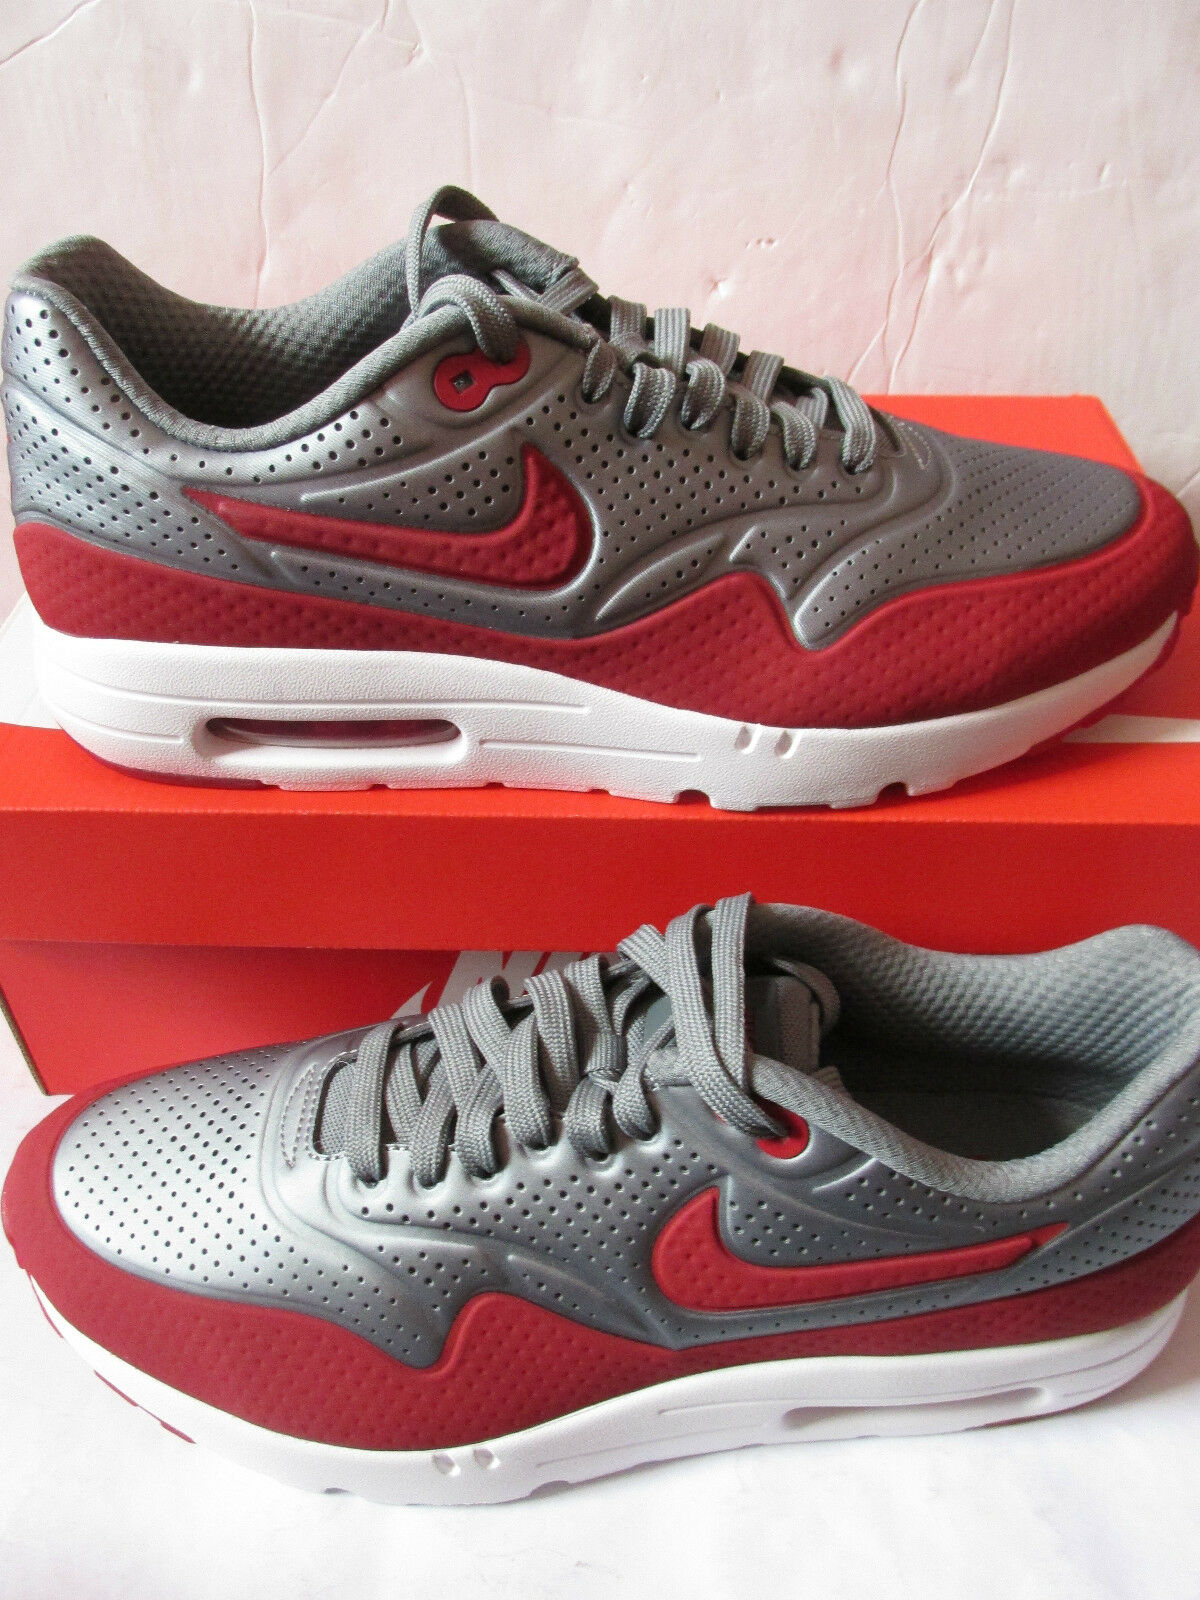 nike air max 1 ultra  moire homme  ultra running trainers 705297 006 Baskets  chaussures 747b4f